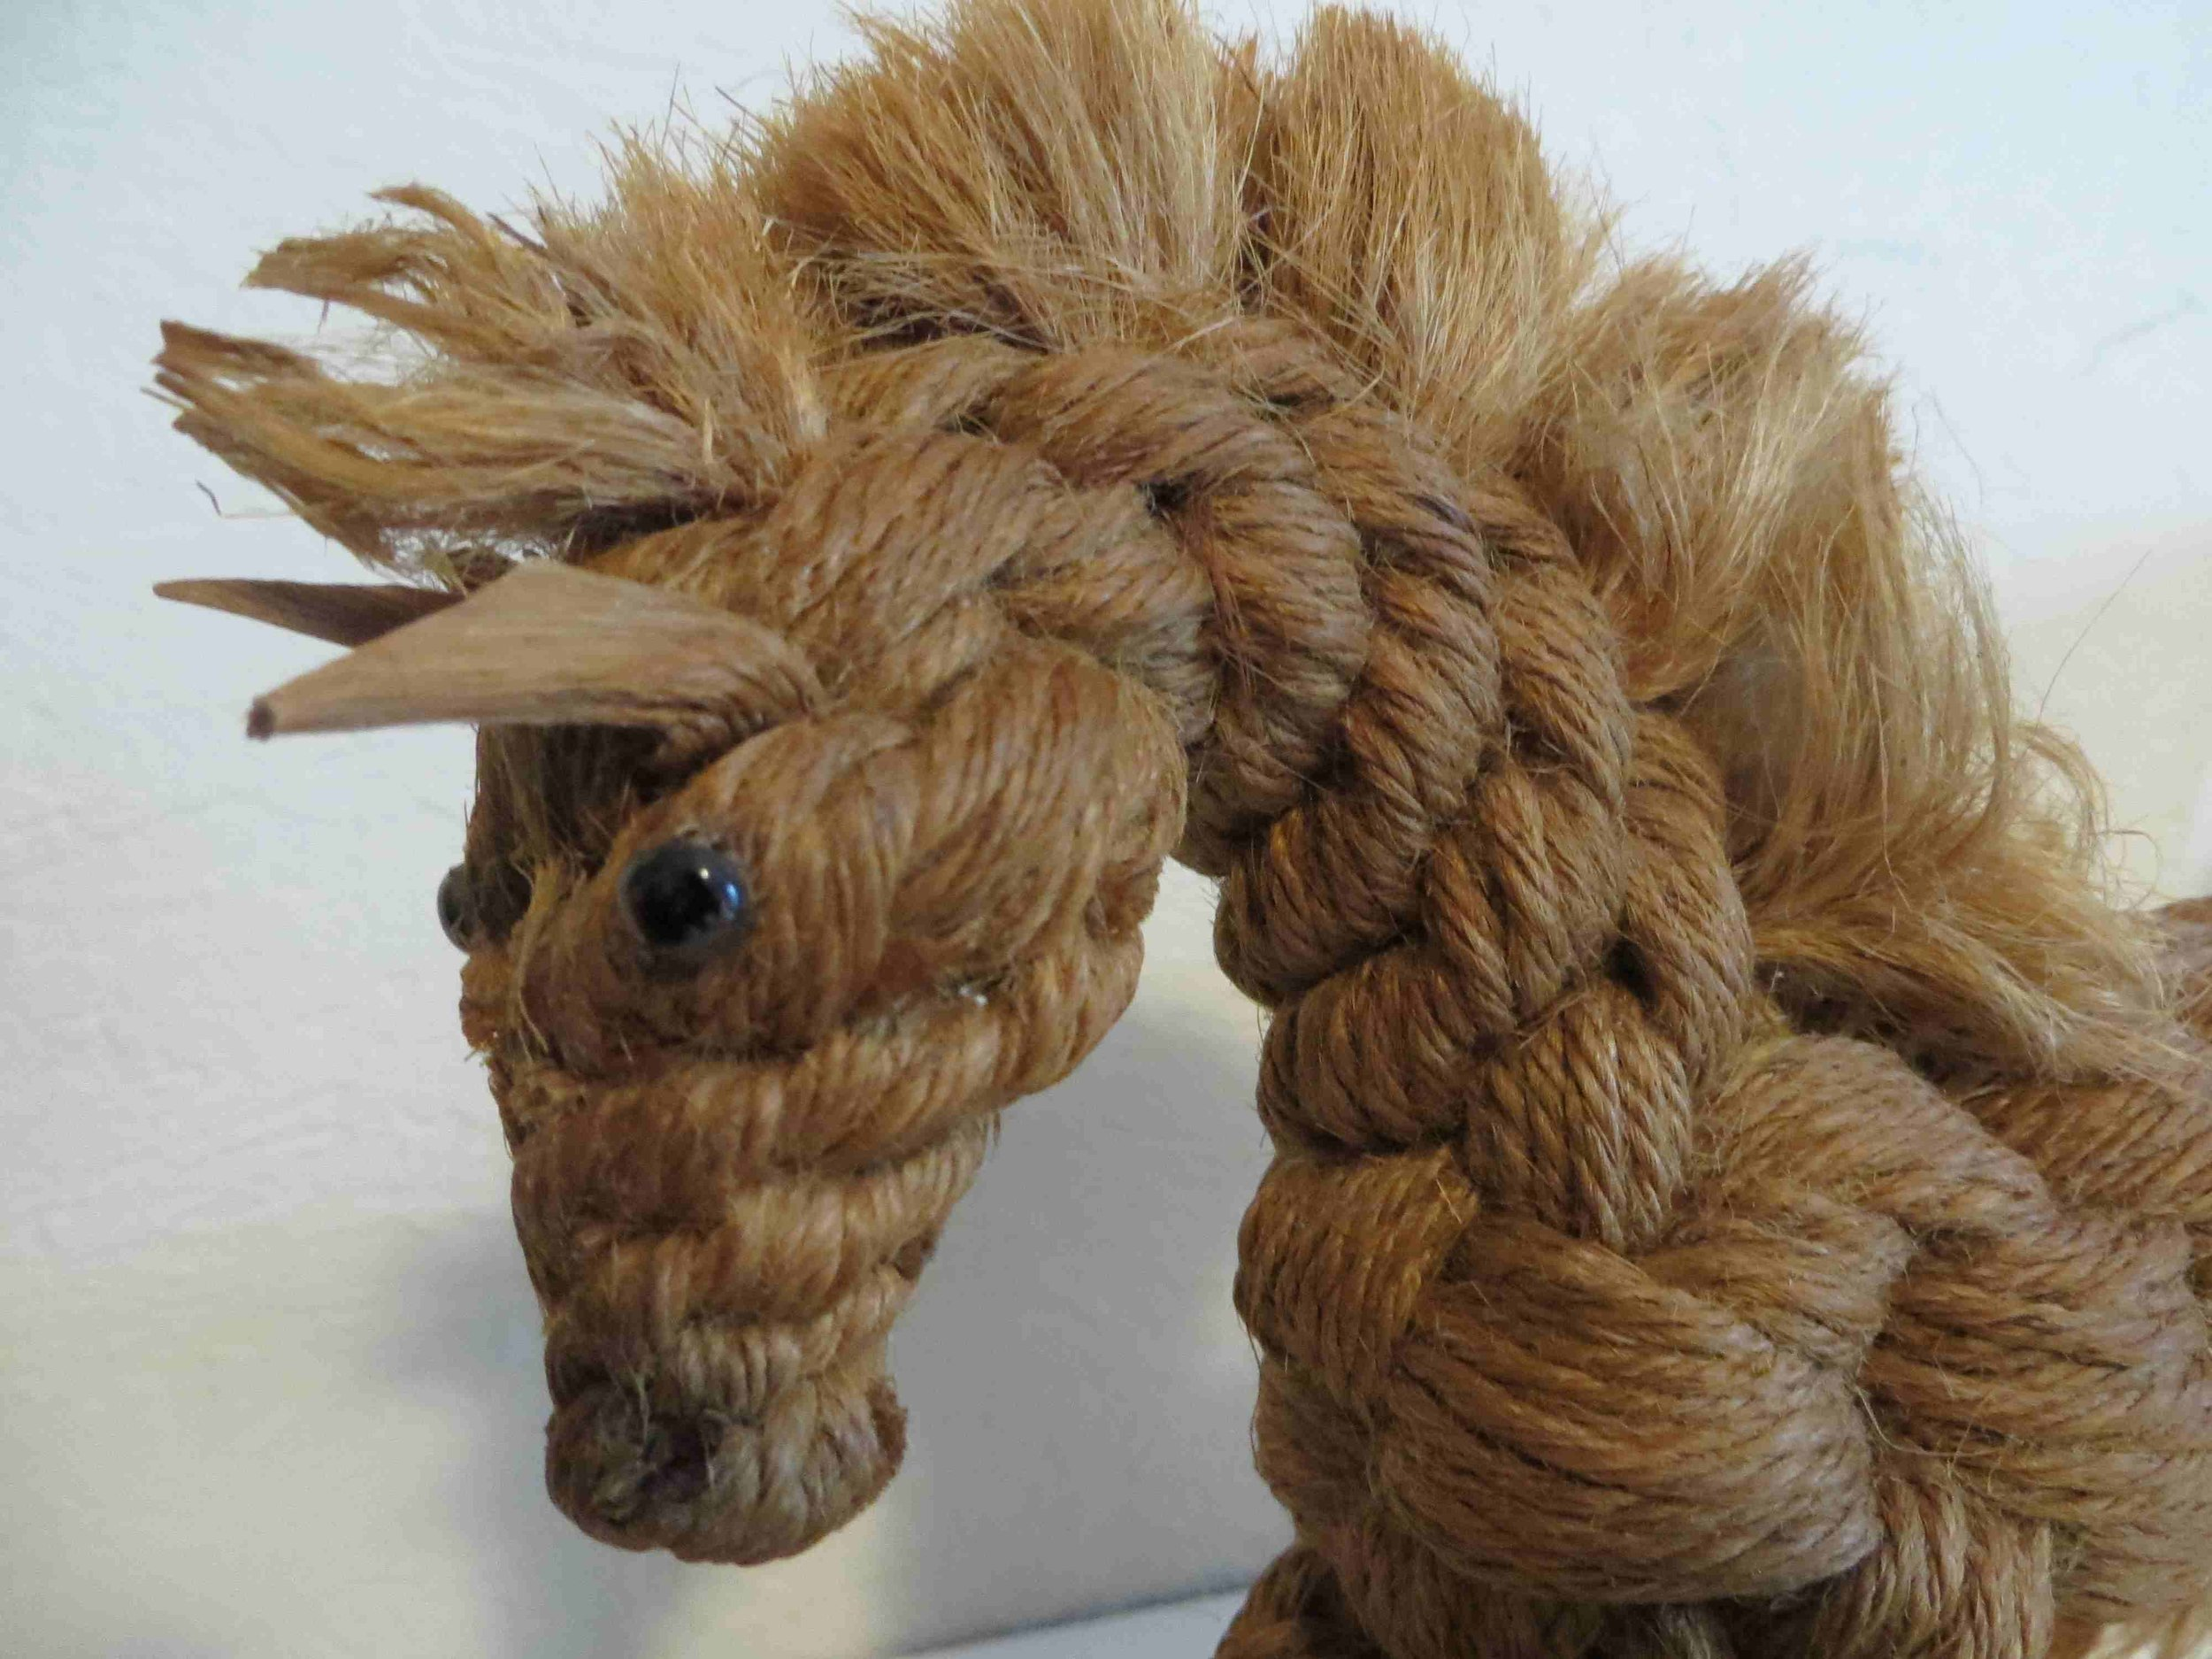 Twine Horse sculpture by Raiford FL INmate ARtist-018 - Copy.jpg